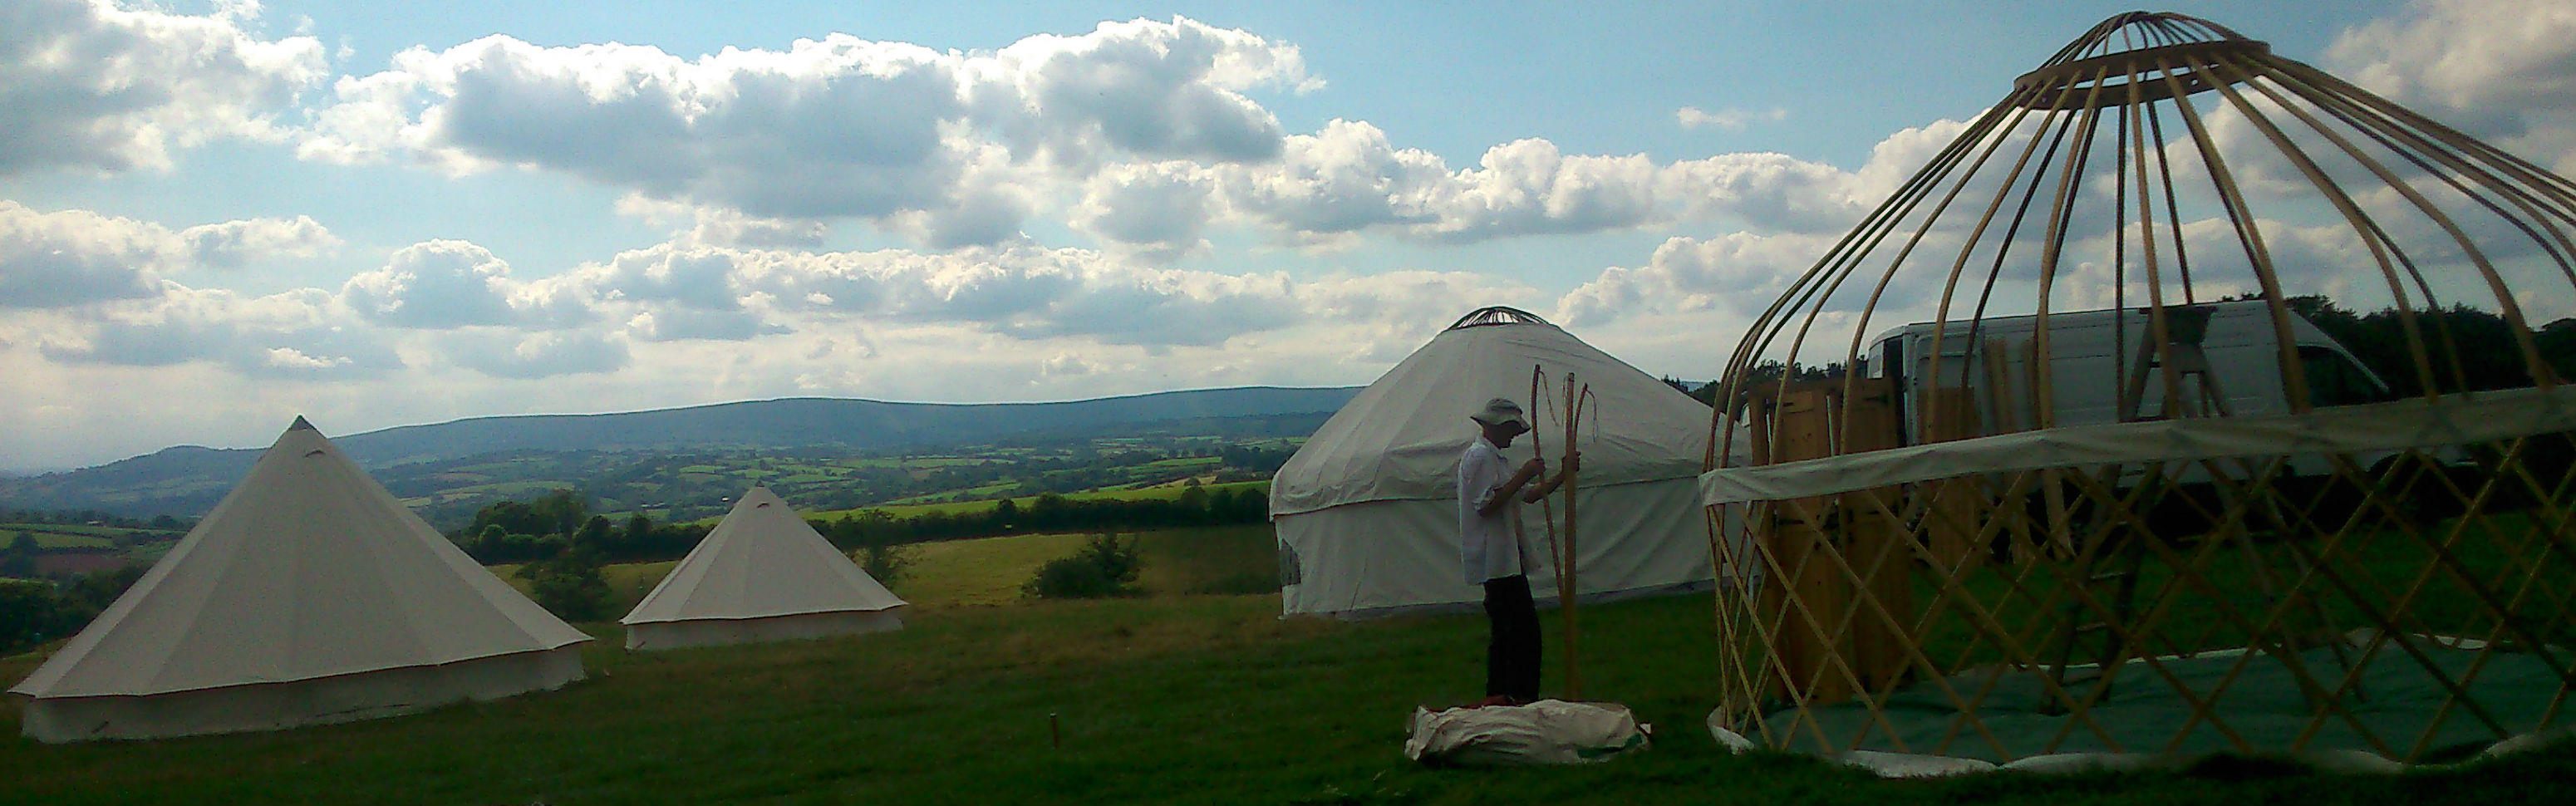 Rent Yurts For Your Event Fabulous Luxury Yurt And Bell Tent Hire